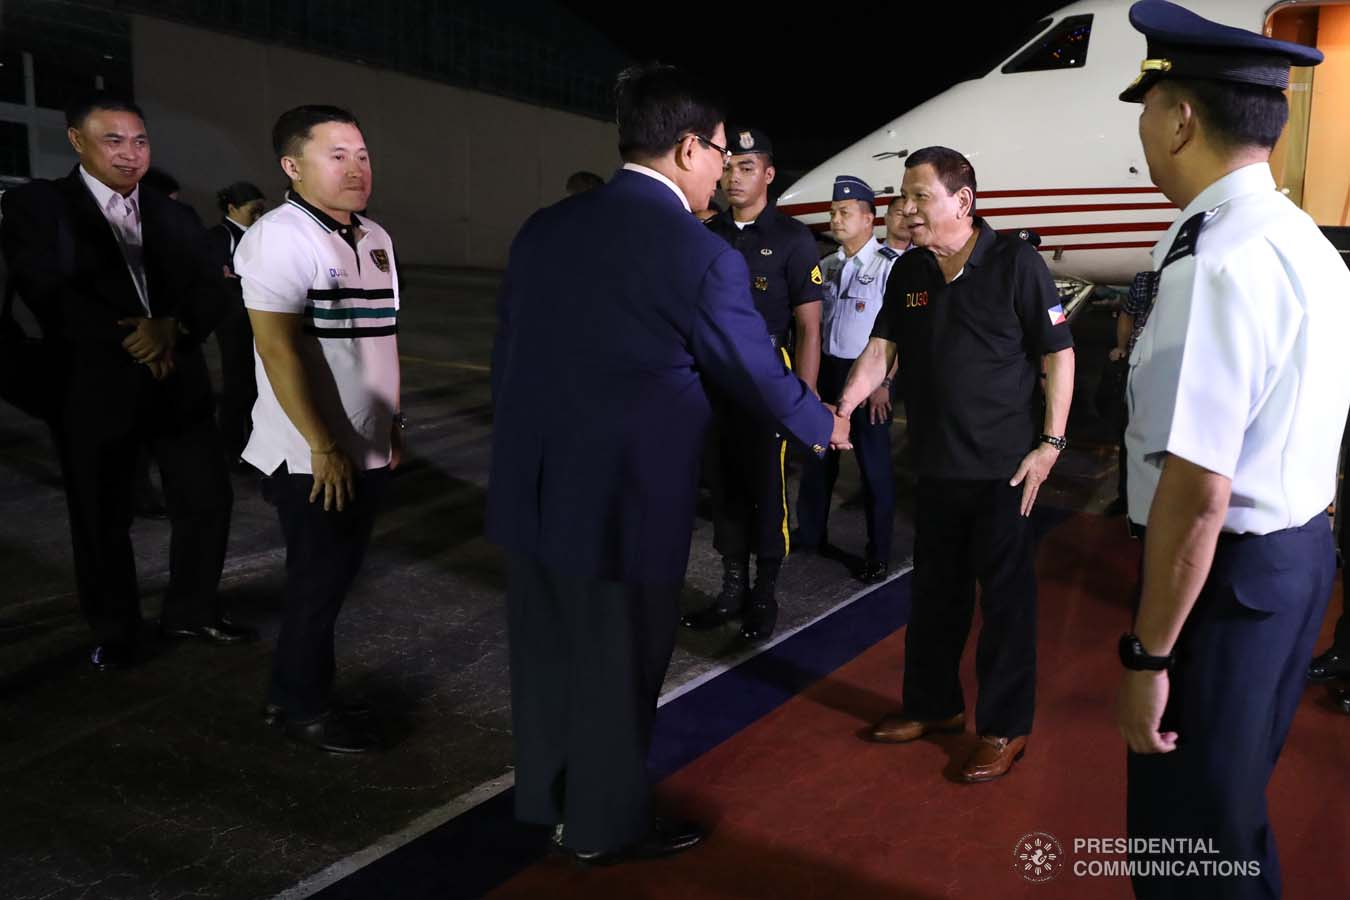 President Rodrigo Roa Duterte is welcomed back by National Security Adviser Hermogenes Esperon Jr. upon his arrival at the Villamor Air Base in Pasay City on November 4, 2019 following his successful participation in the 35th Association of Southeast Asian Nations (ASEAN) Summit and Related Summits in the Kingdom of Thailand. ROBINSON NIÑAL JR./PRESIDENTIAL PHOTO